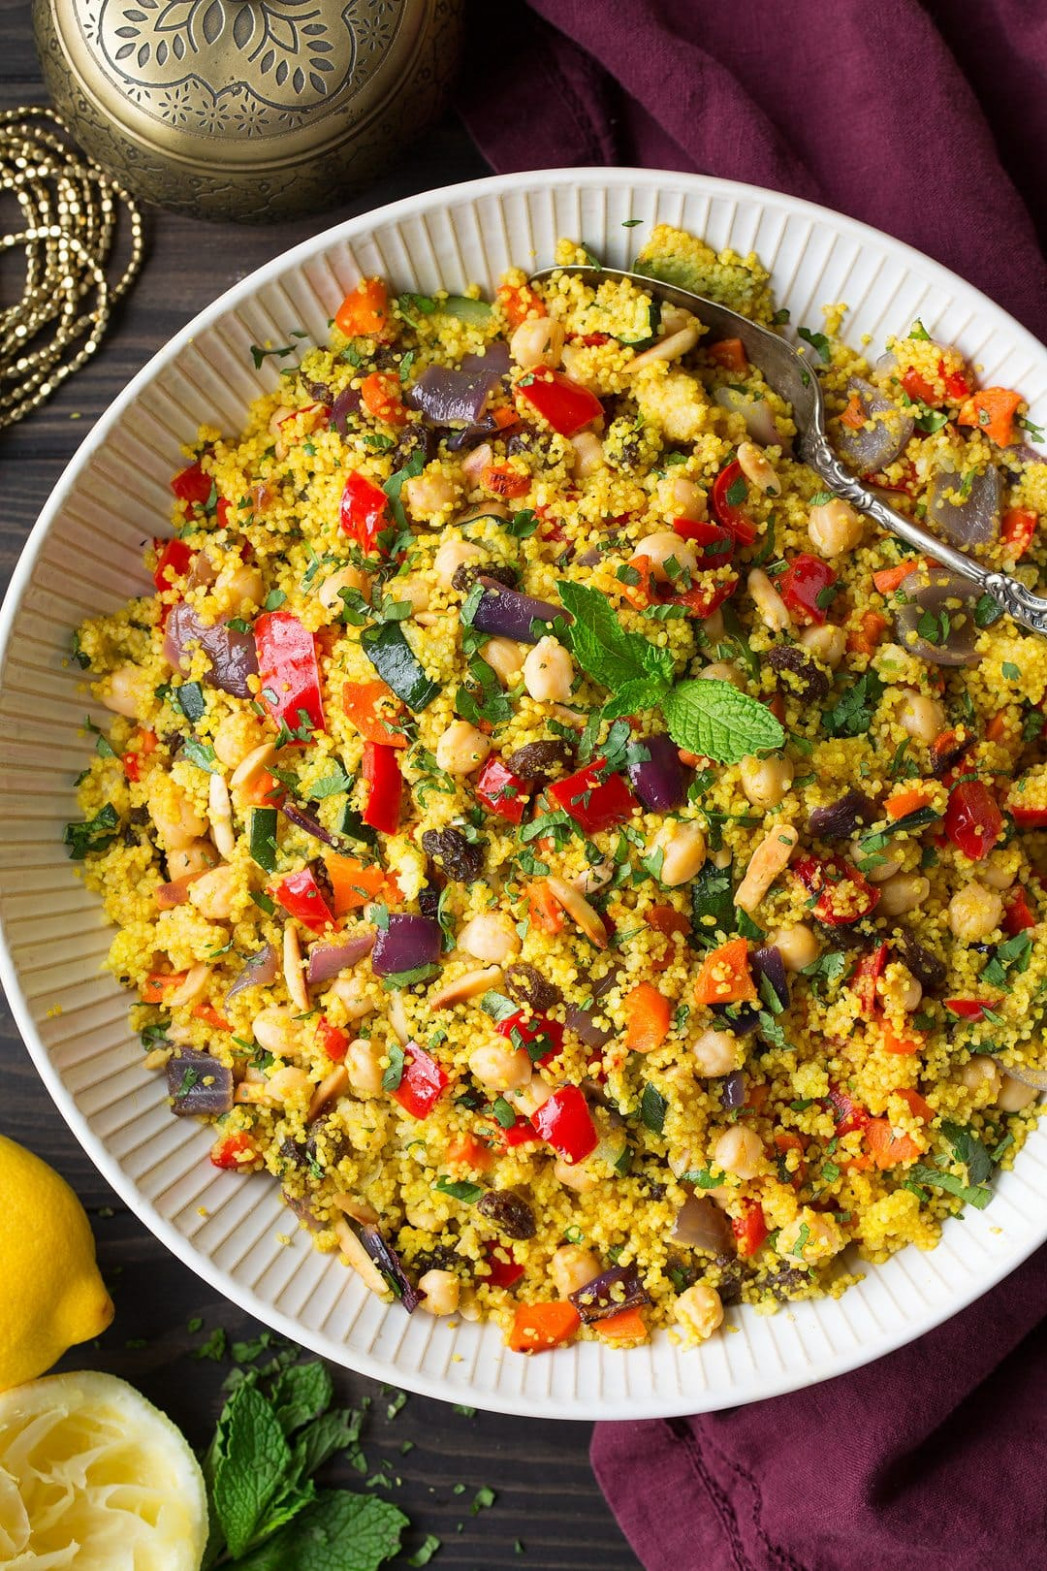 Moroccan Couscous Recipe (with Roasted Veggies) - Cooking Classy - couscous recipes vegetarian